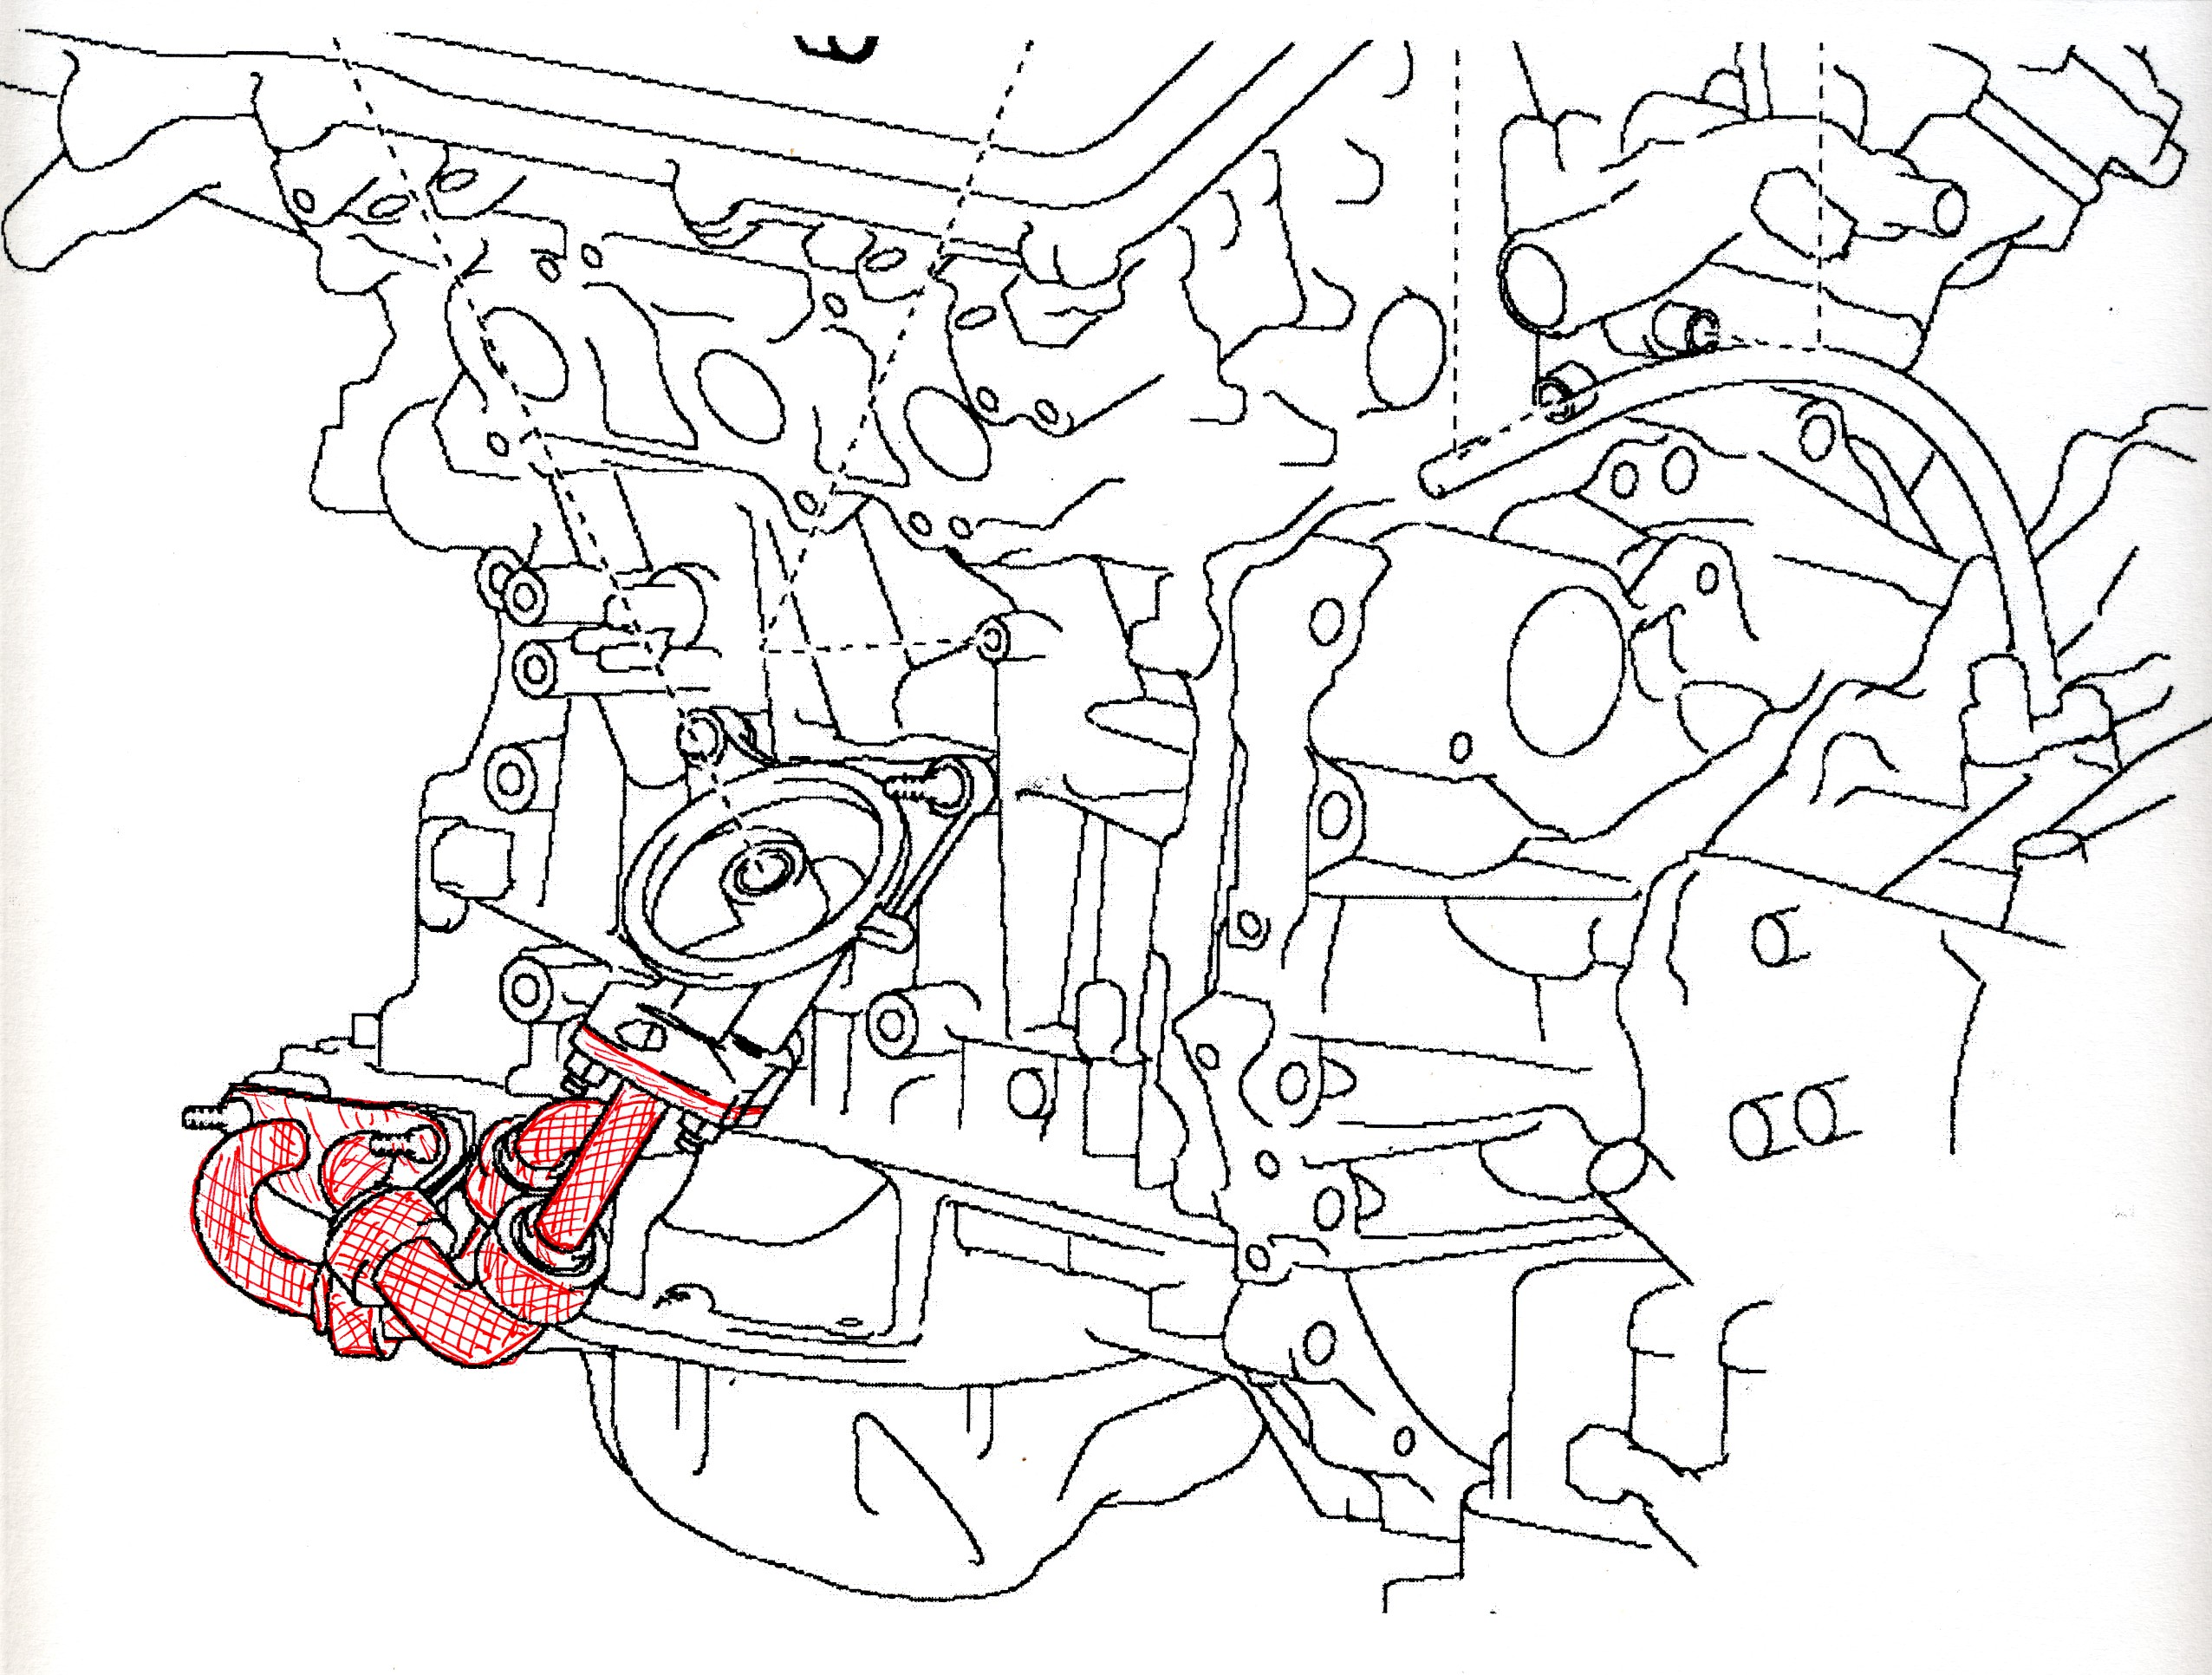 2007 lexus es 350 engine diagram wiring diagram library 2007 Lexus ES 350 Alternator Engine Diagram 2007 lexus engine diagram basic electronics wiring diagram 2007 lexus gs 350 engine diagram 2007 lexus es 350 engine diagram